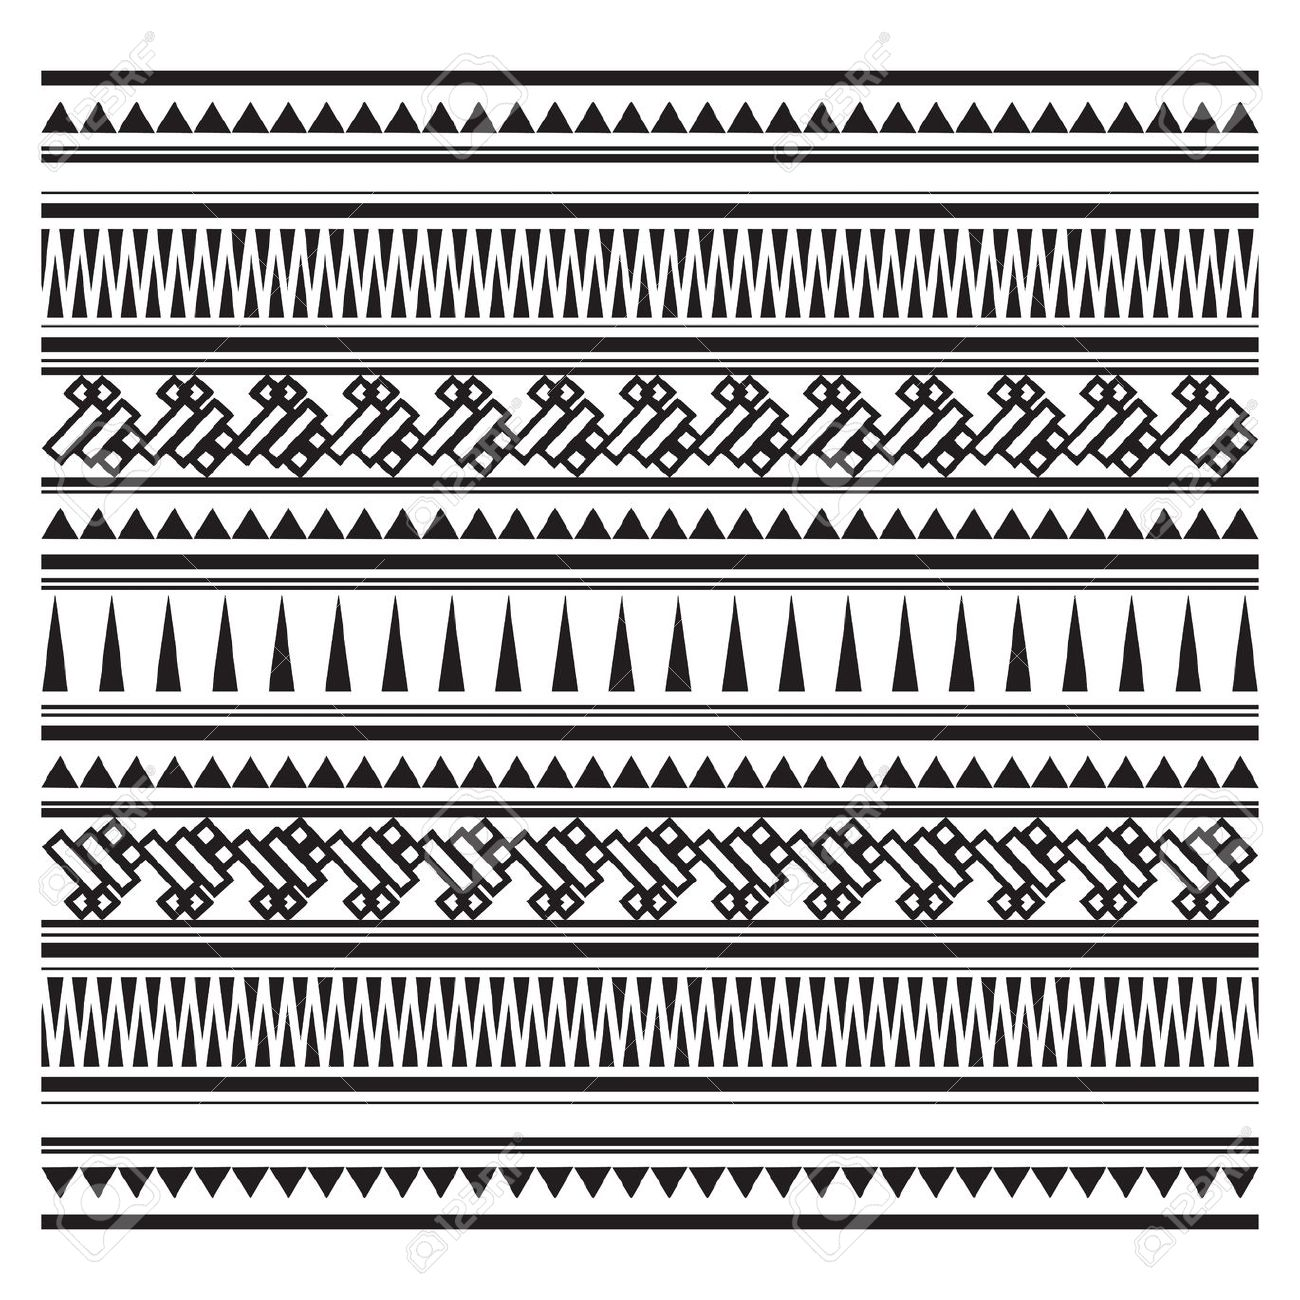 27+ Best Aztec Patterns, Wallpapers | Design Trends ...